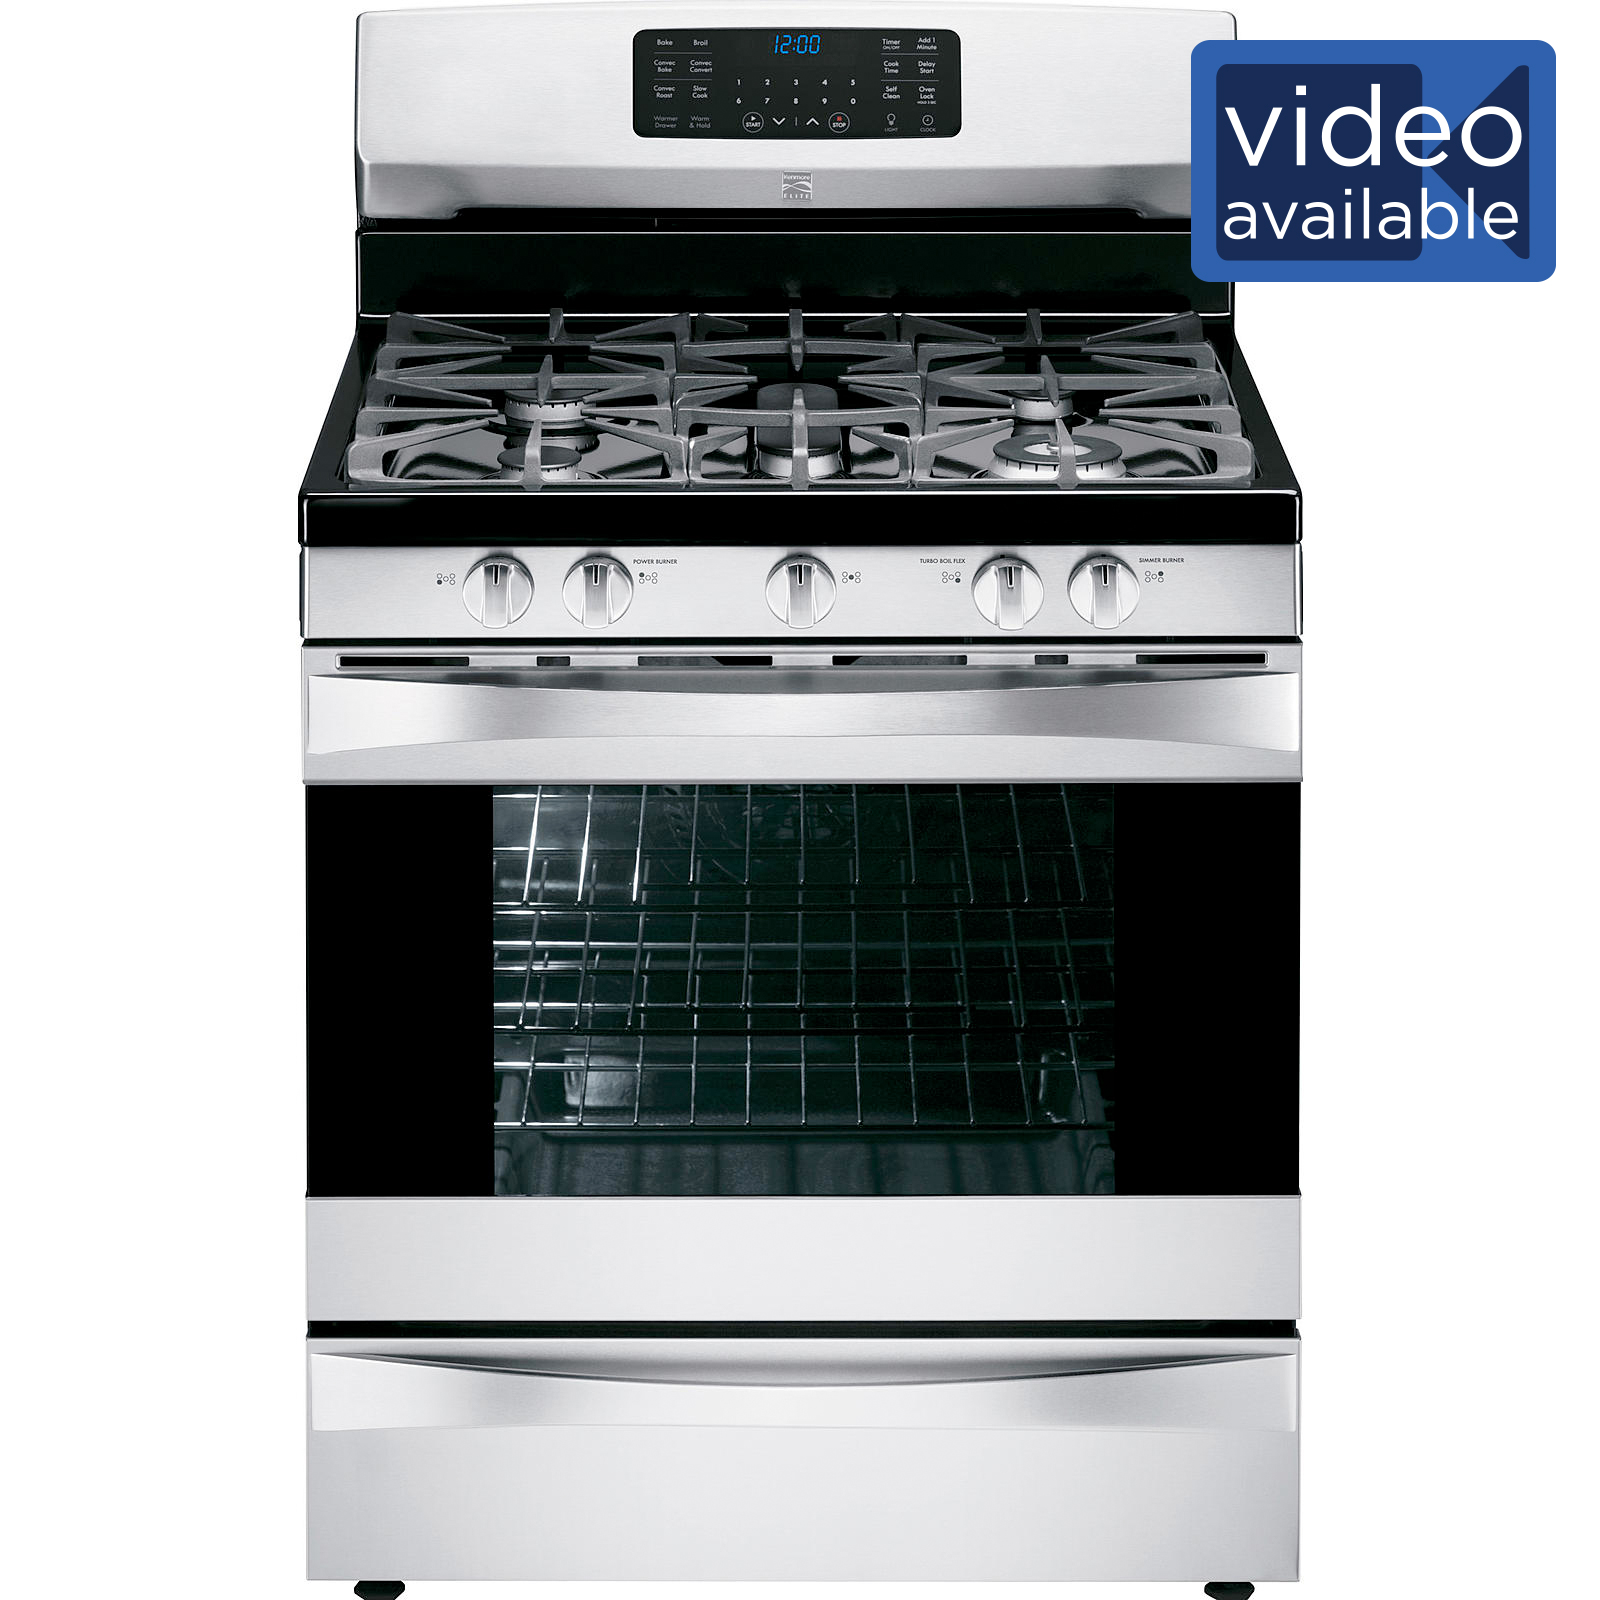 Could be the oven won't reach the right temperature or the stove heating element won't turn off. Whatever the 'won't,' it gets in the way of cooking and, therefore, life. Repair Clinic is here to help you fix your Kenmore stove, range or oven, so you can get back to the business of making meals, or, we might say, living your life.